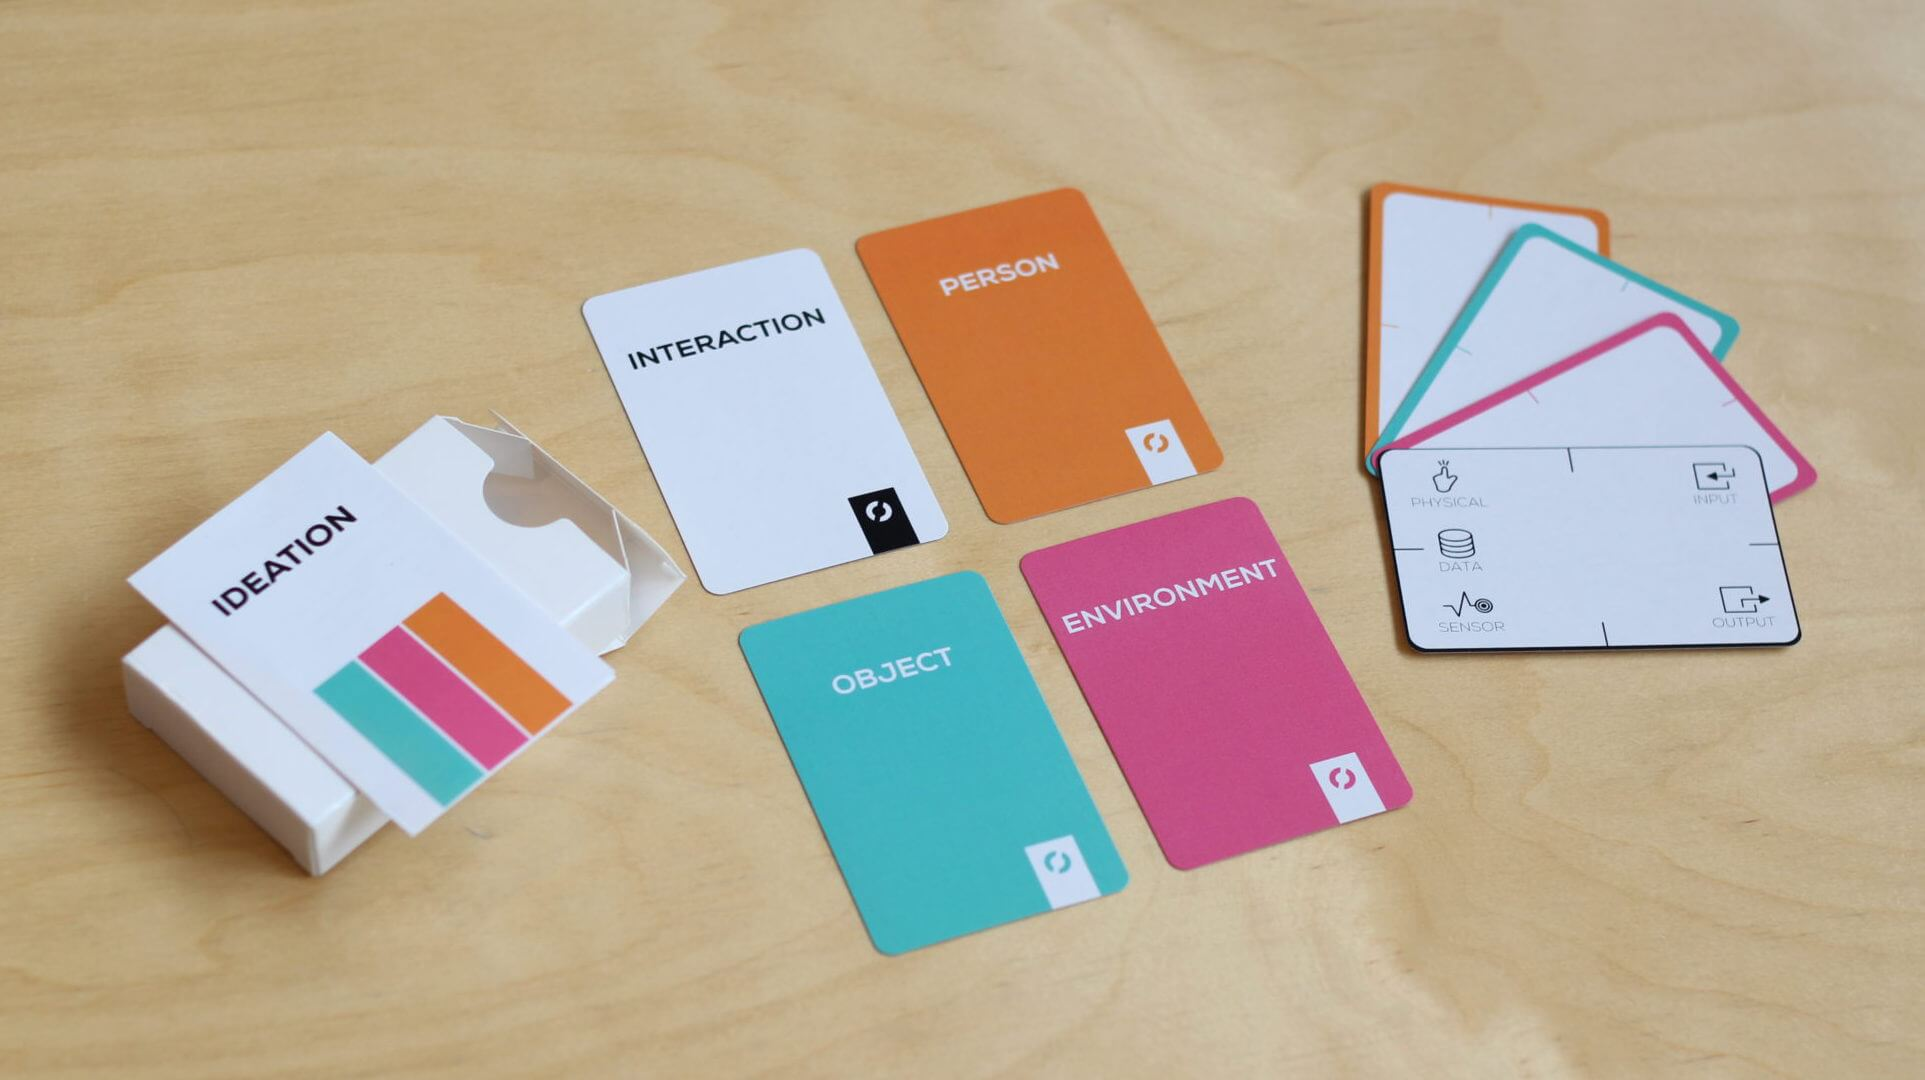 IOT Ideation Cardset